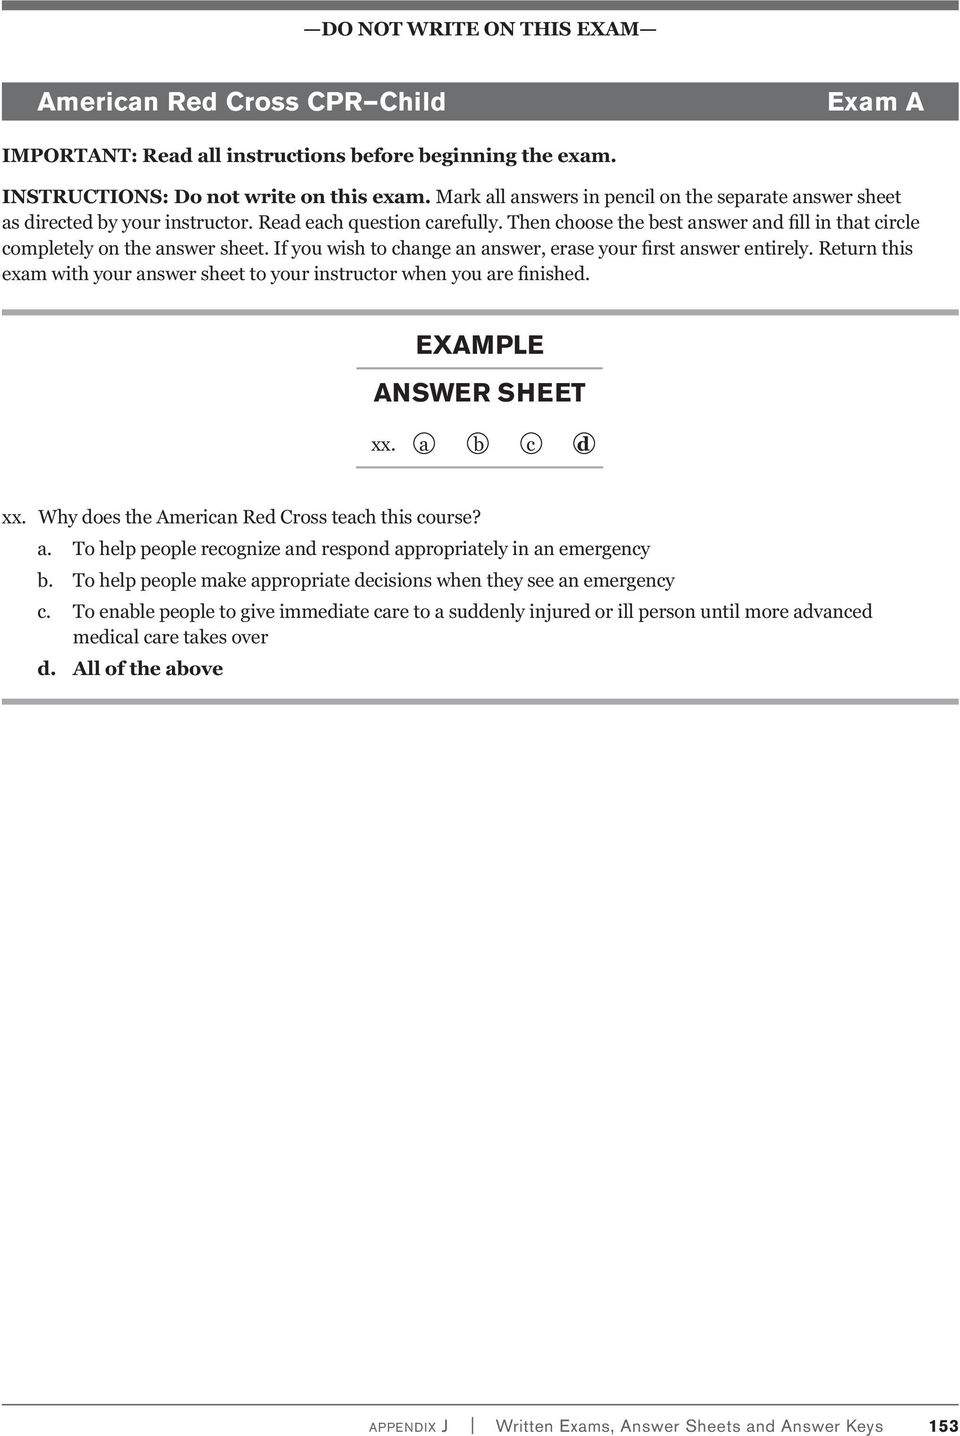 american red cross cpr adult example answer sheet pdf then choose the best answer and fill in that circle completely on the answer sheet